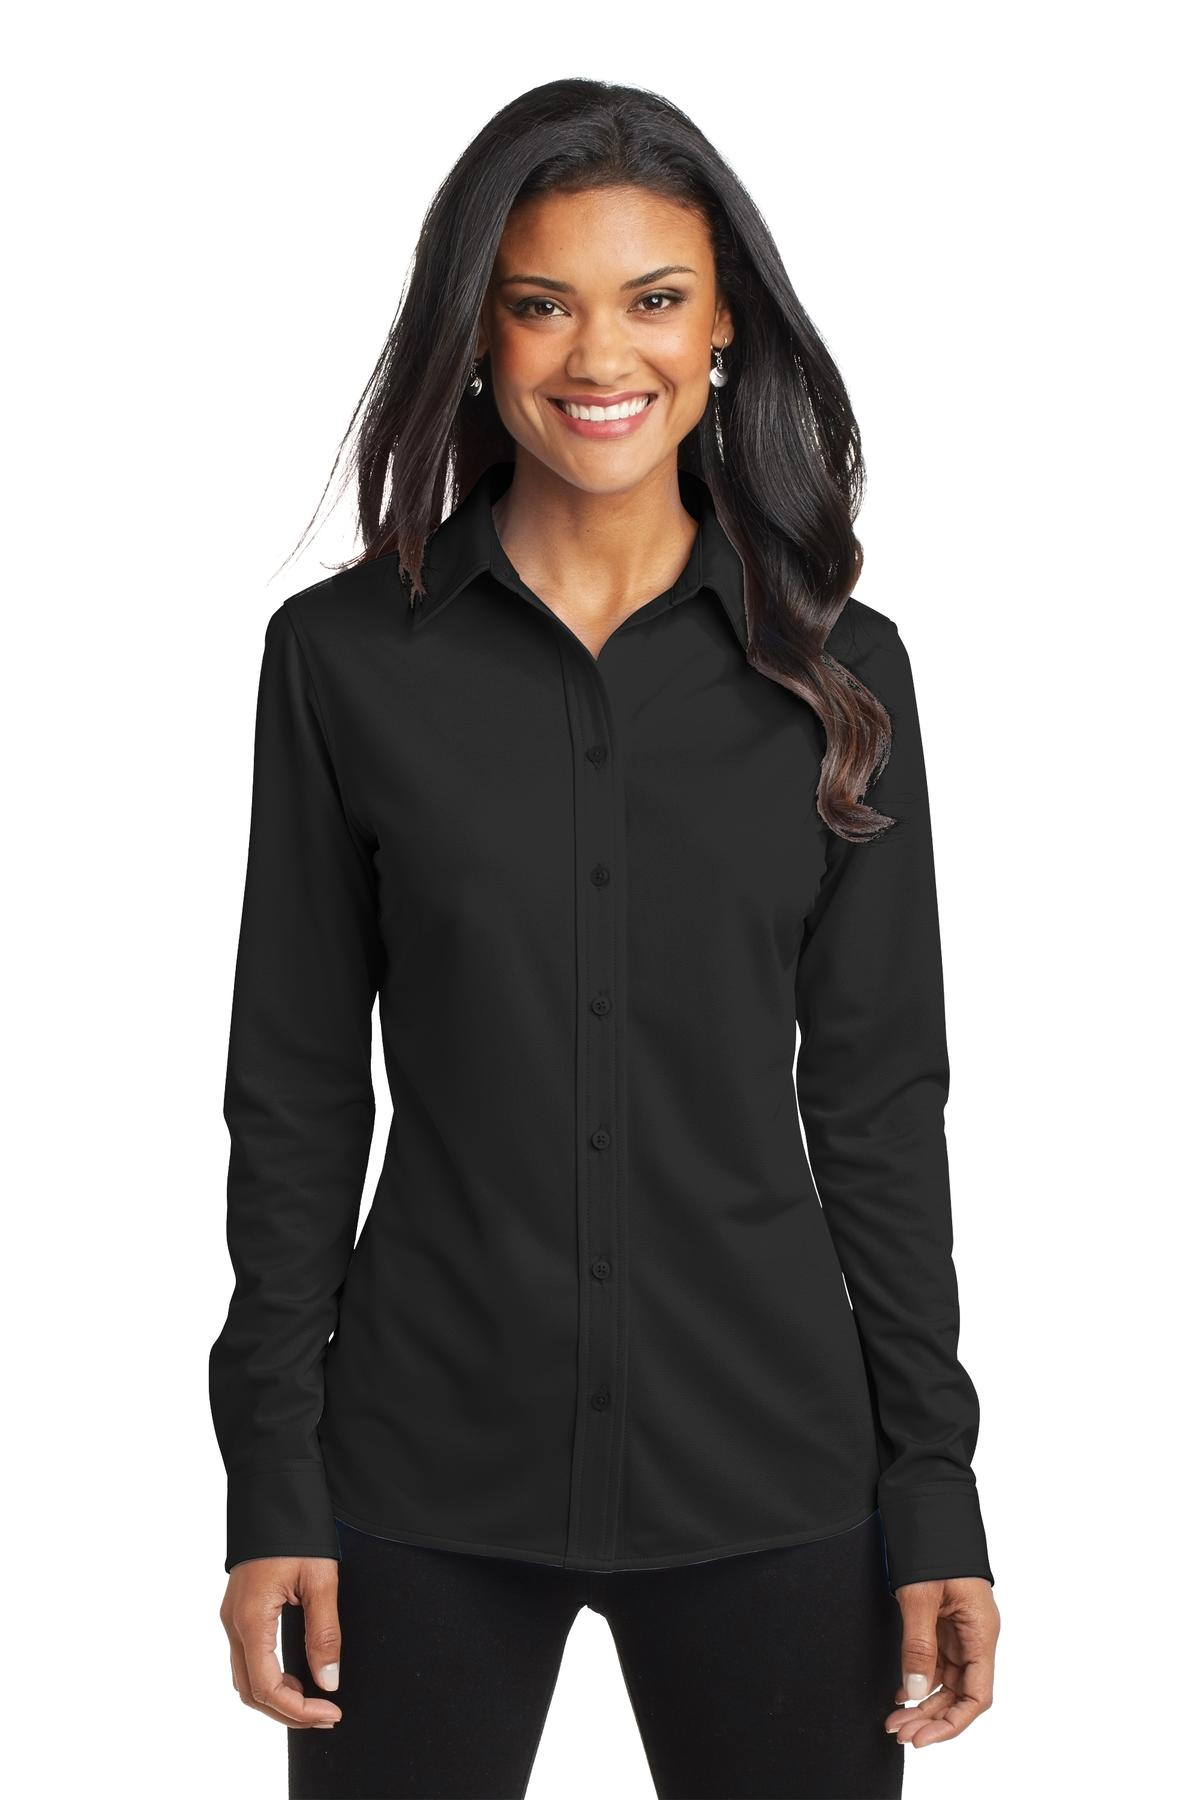 Port Authority ®  Ladies Dimension Knit Dress Shirt. L570 - Black